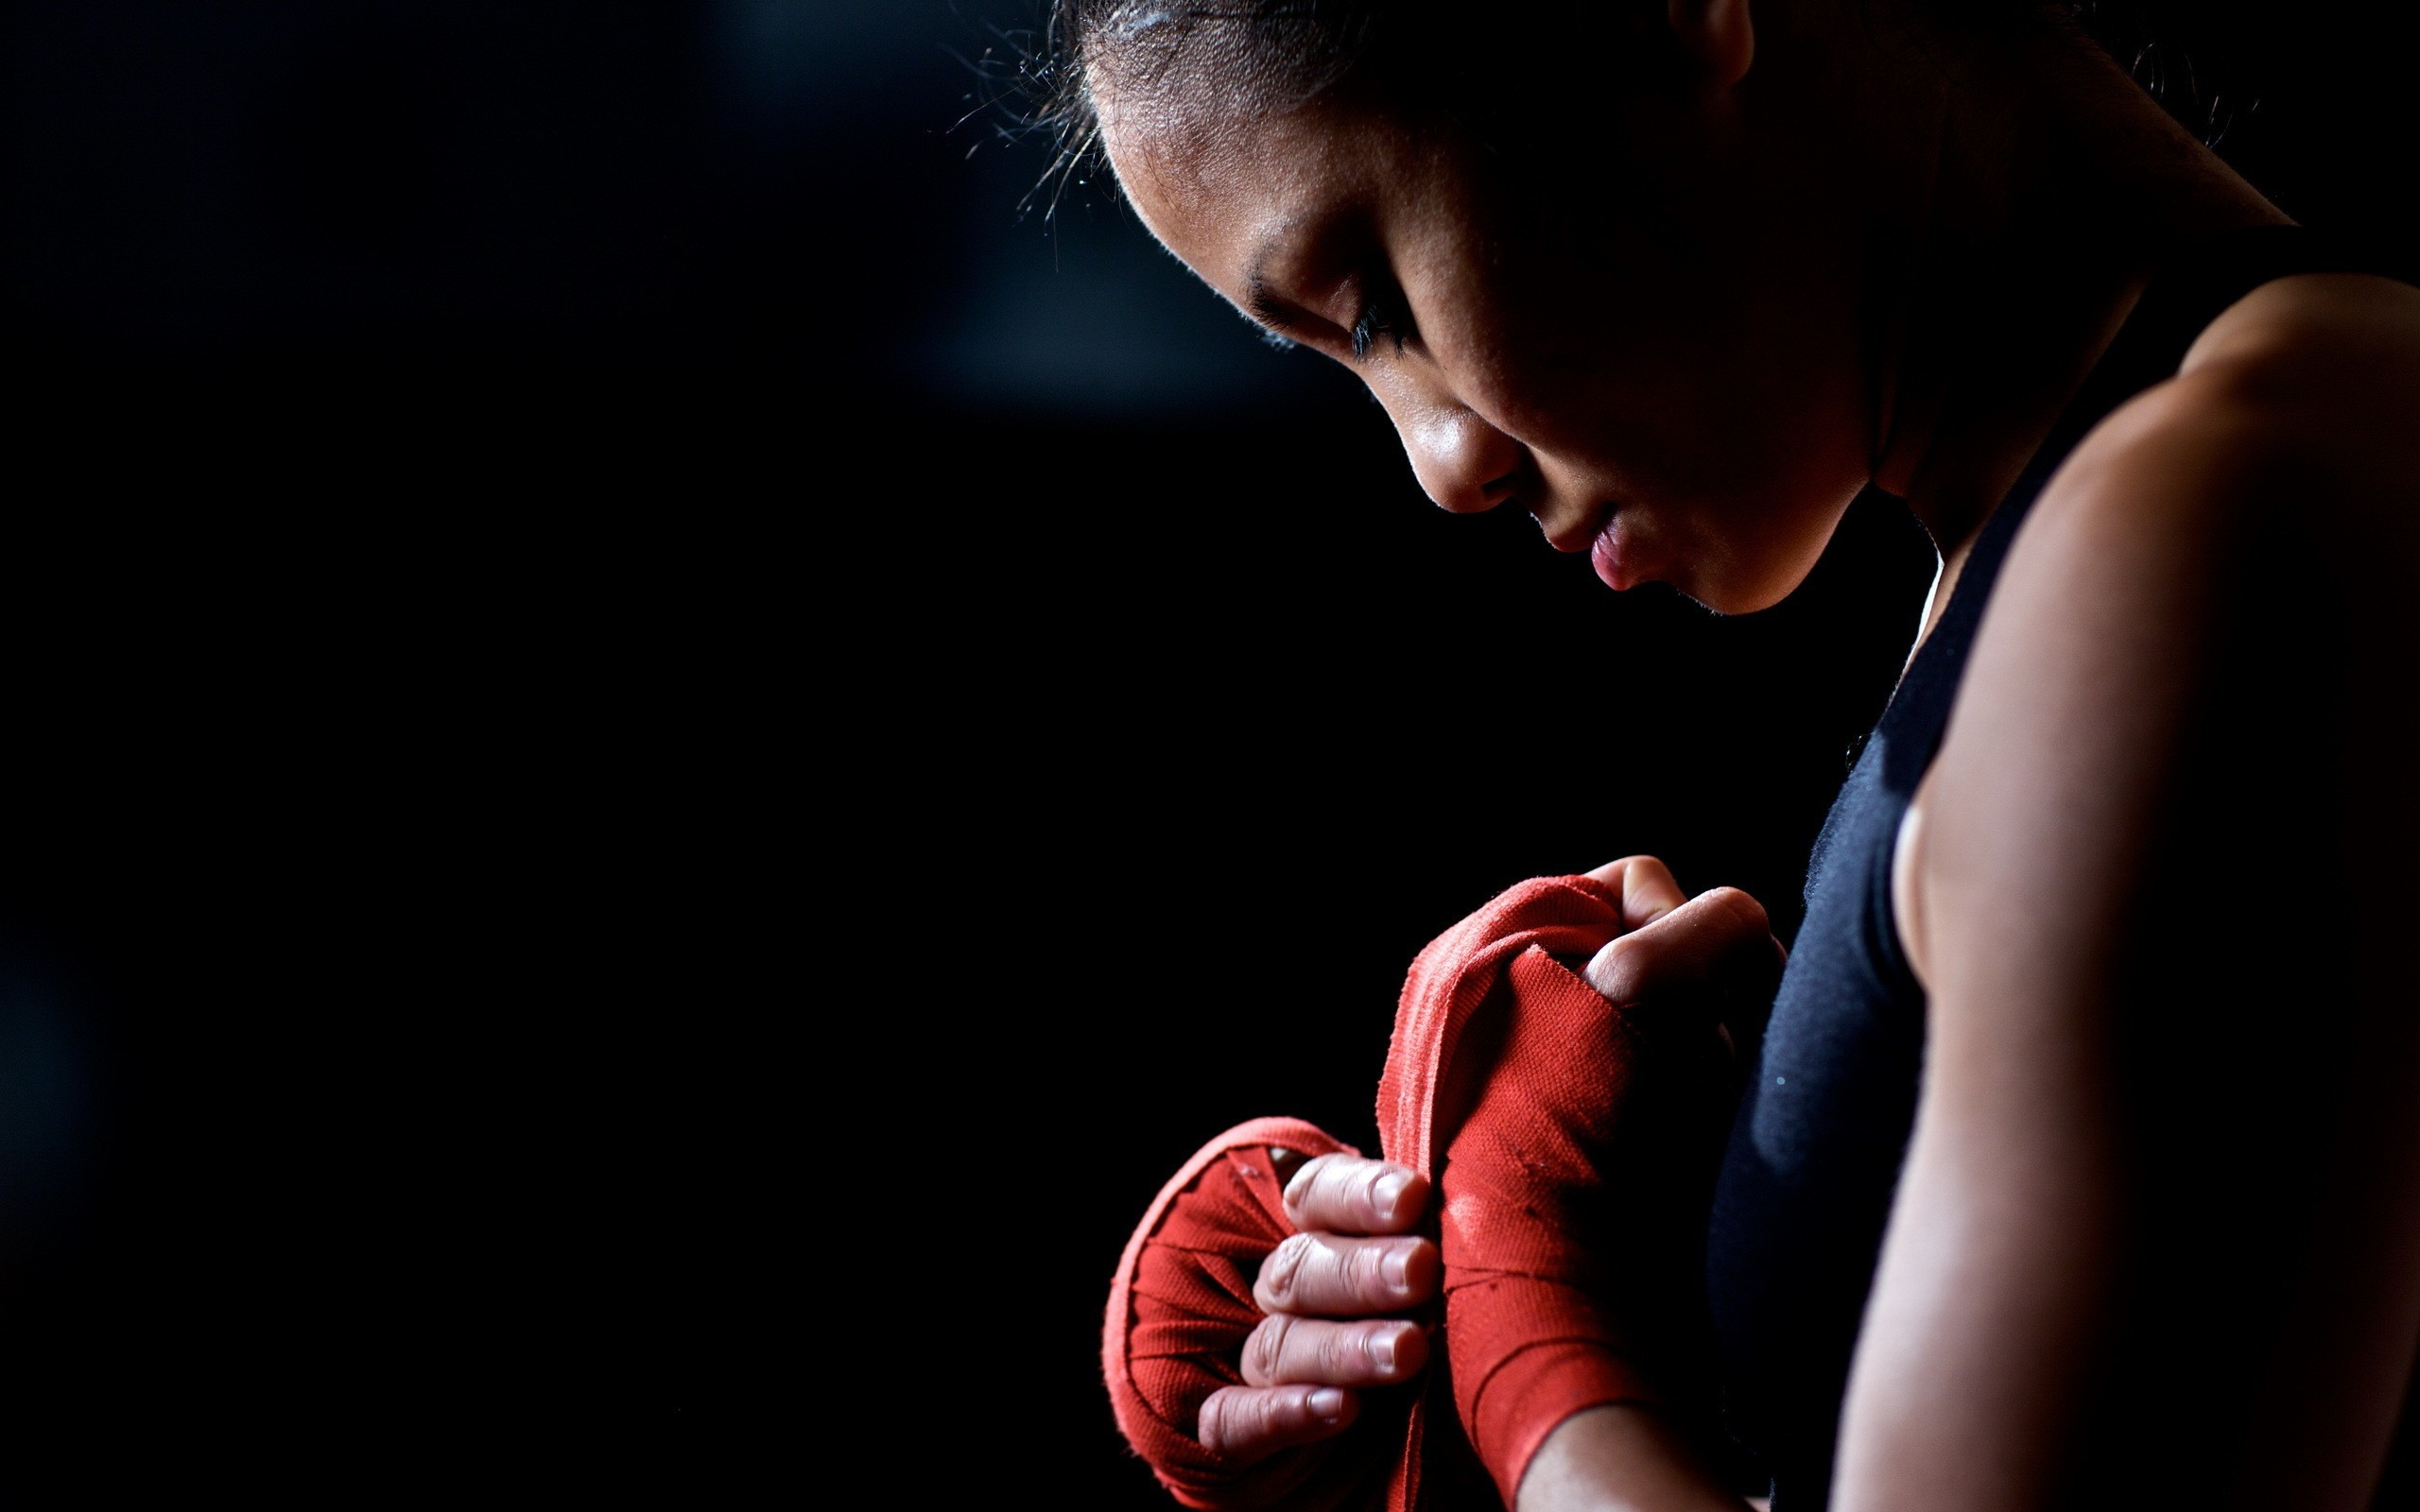 Boxing Wallpaper Background HD 13154